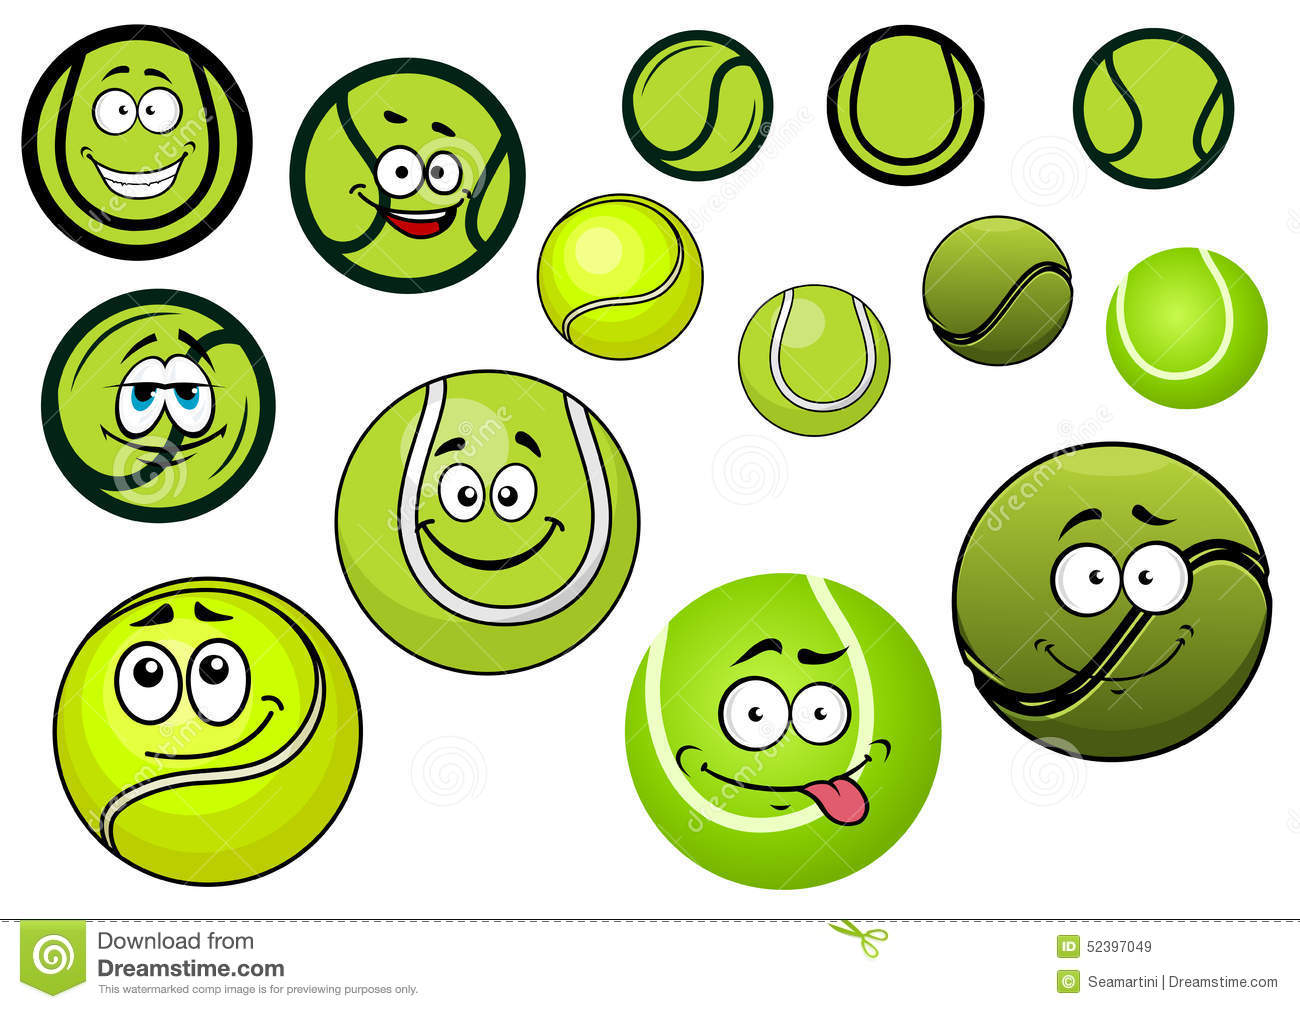 Green Tennis Balls Mascots Cartoon Characters Stock Vector Image 52397049